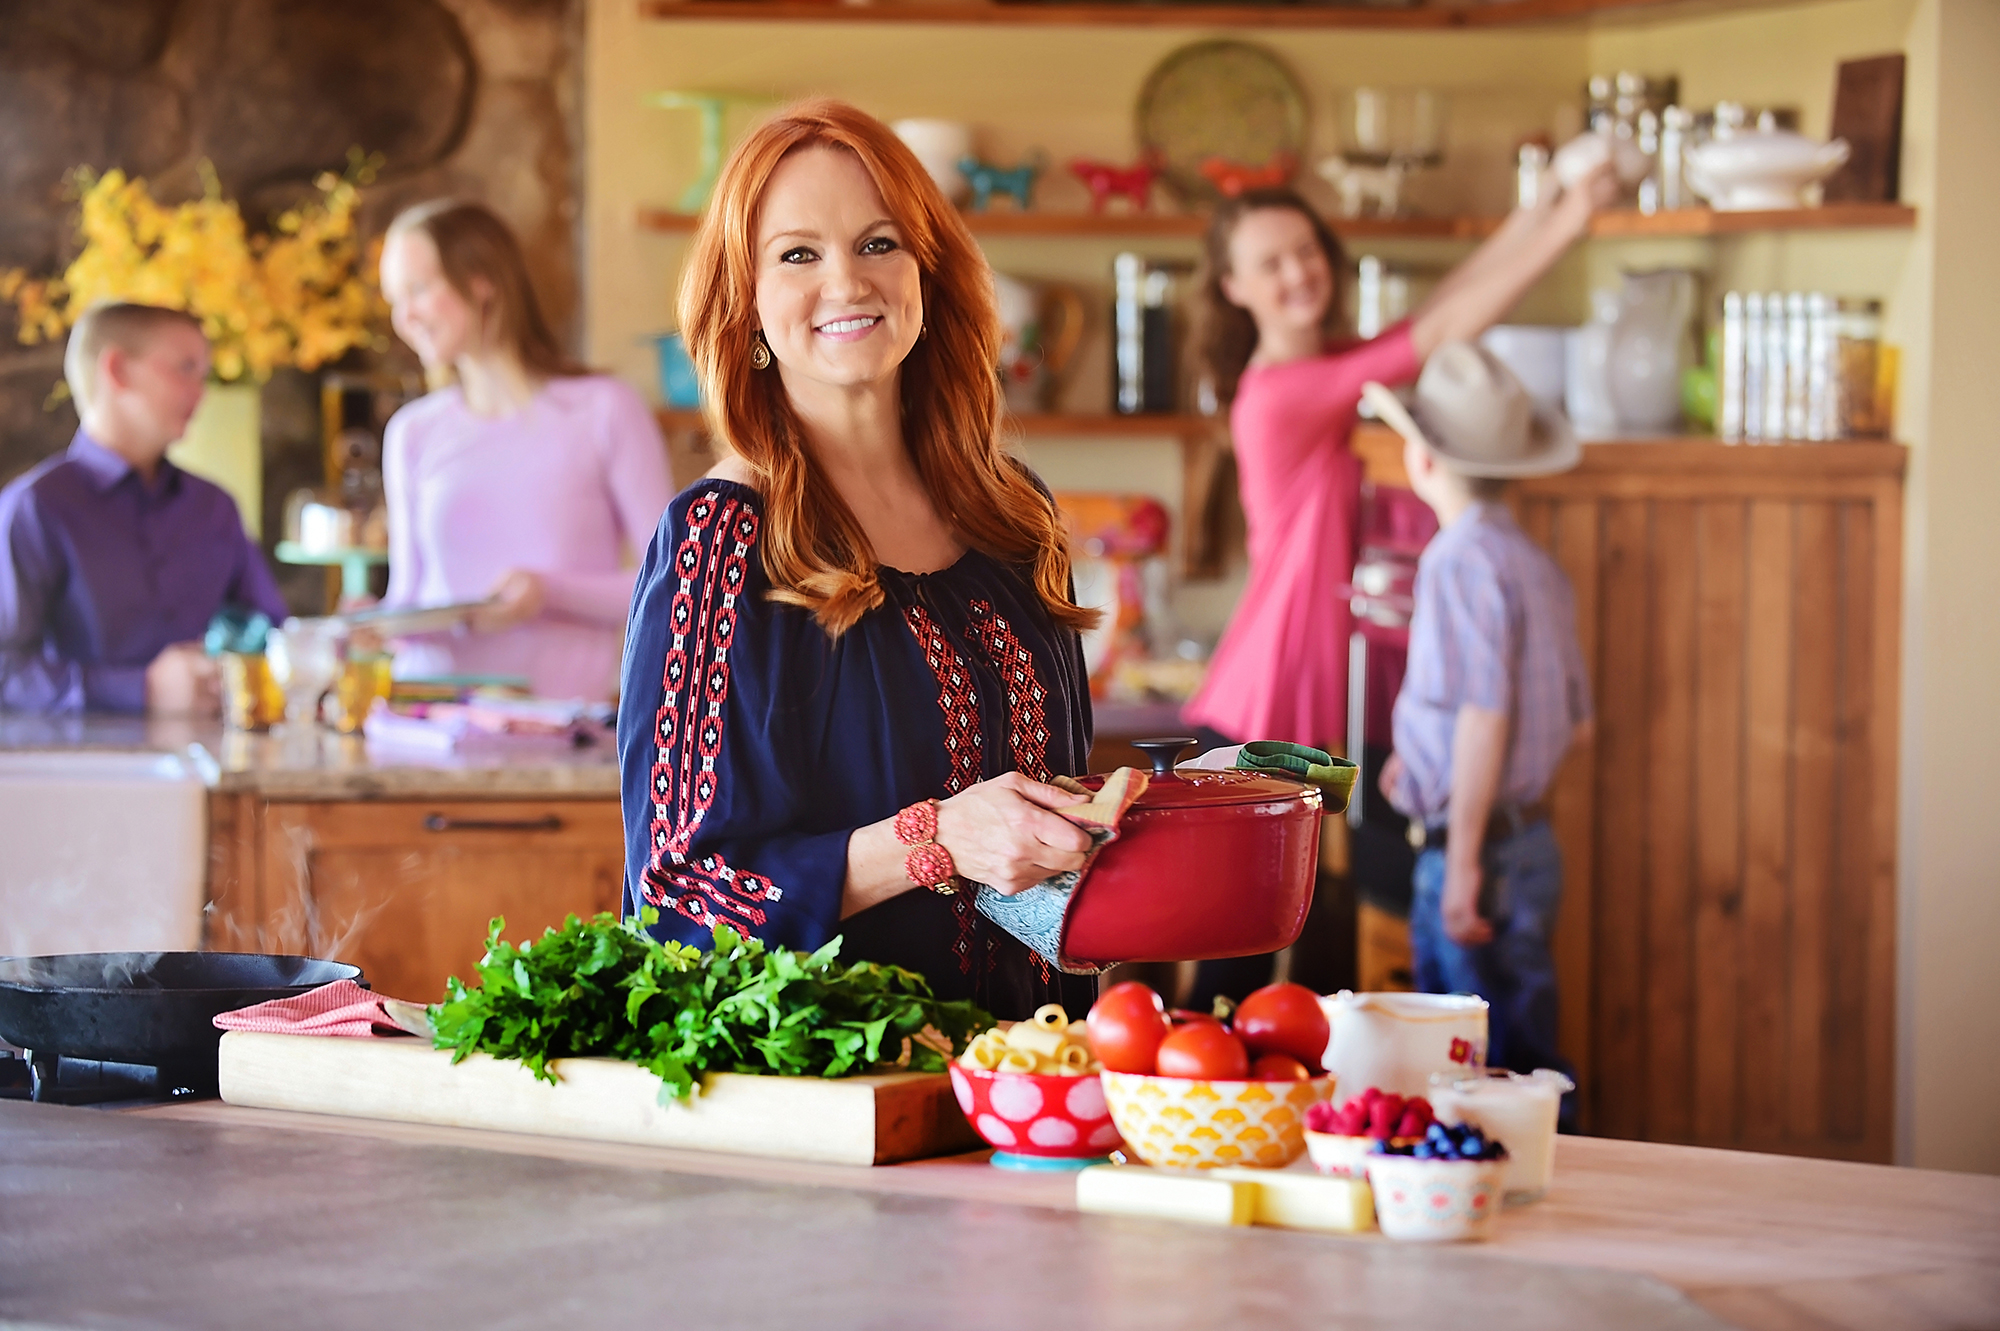 See Pioneer Woman Ree Drummond S Actual Home Kitchen